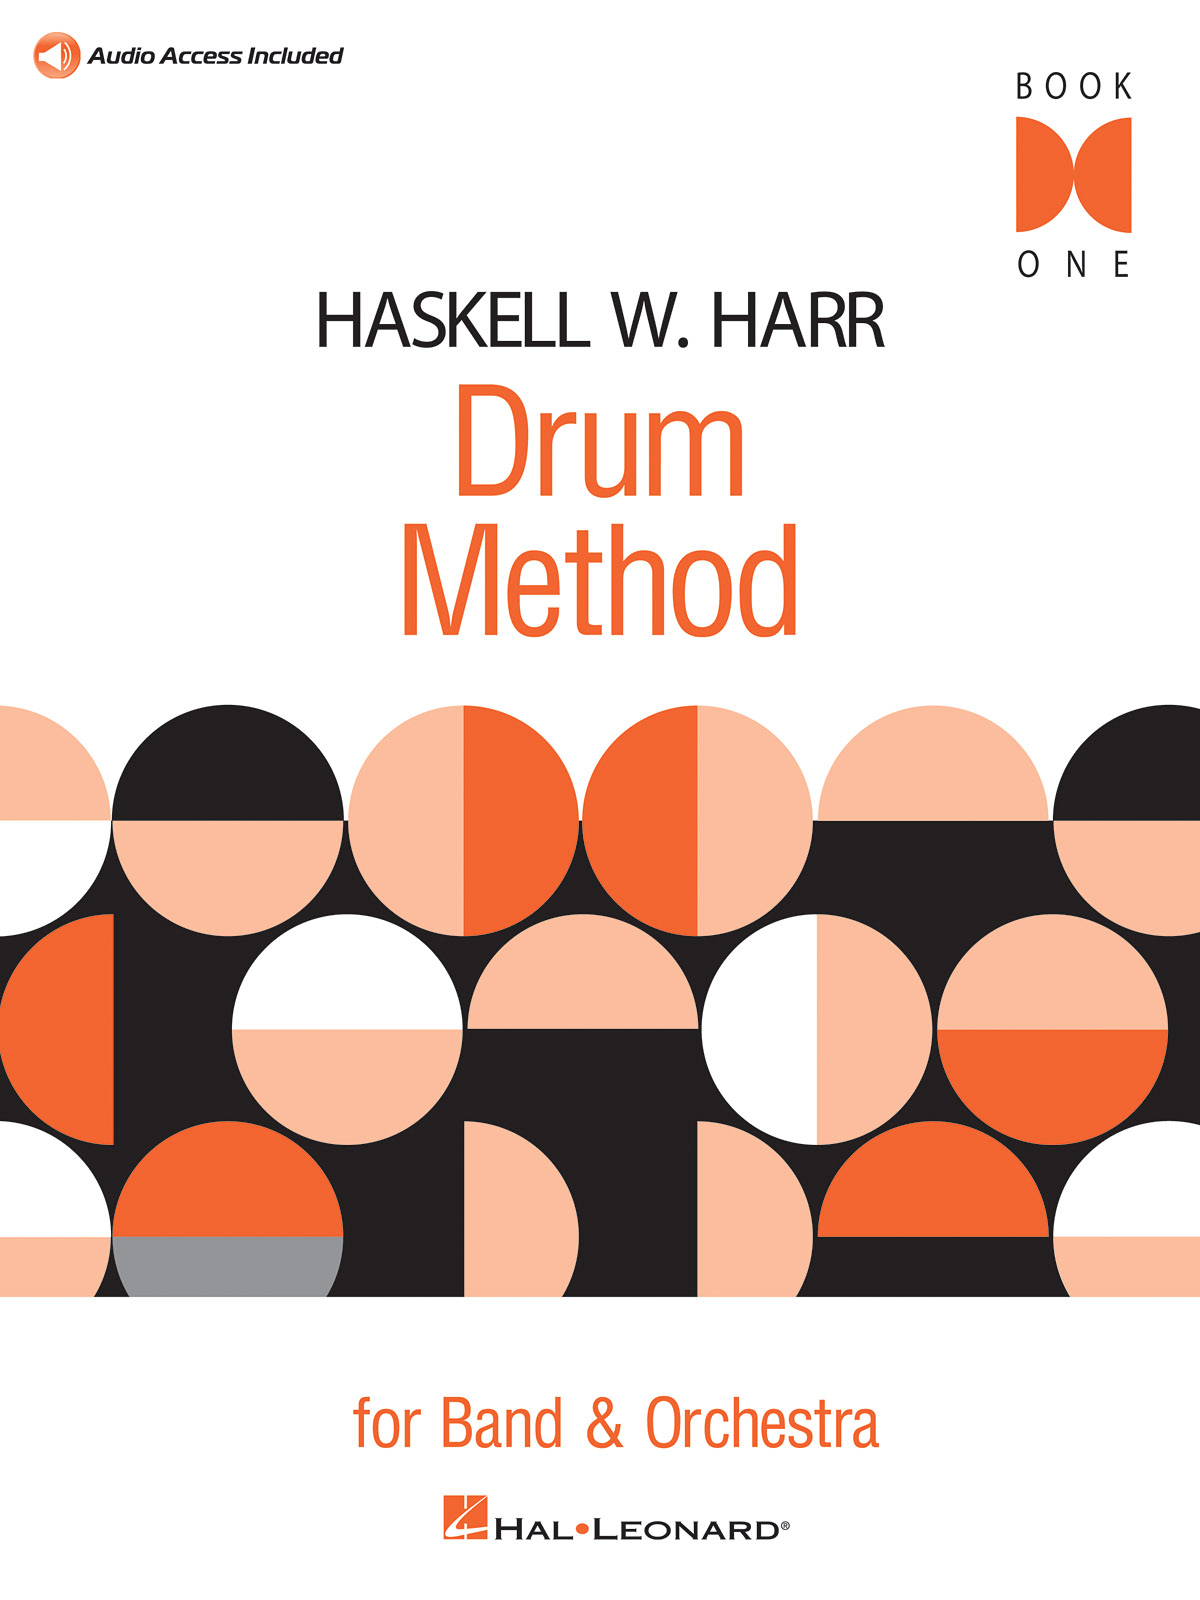 Haskell W. Harr: Drum Method For Band And Orchestra - Book 1: Drums: